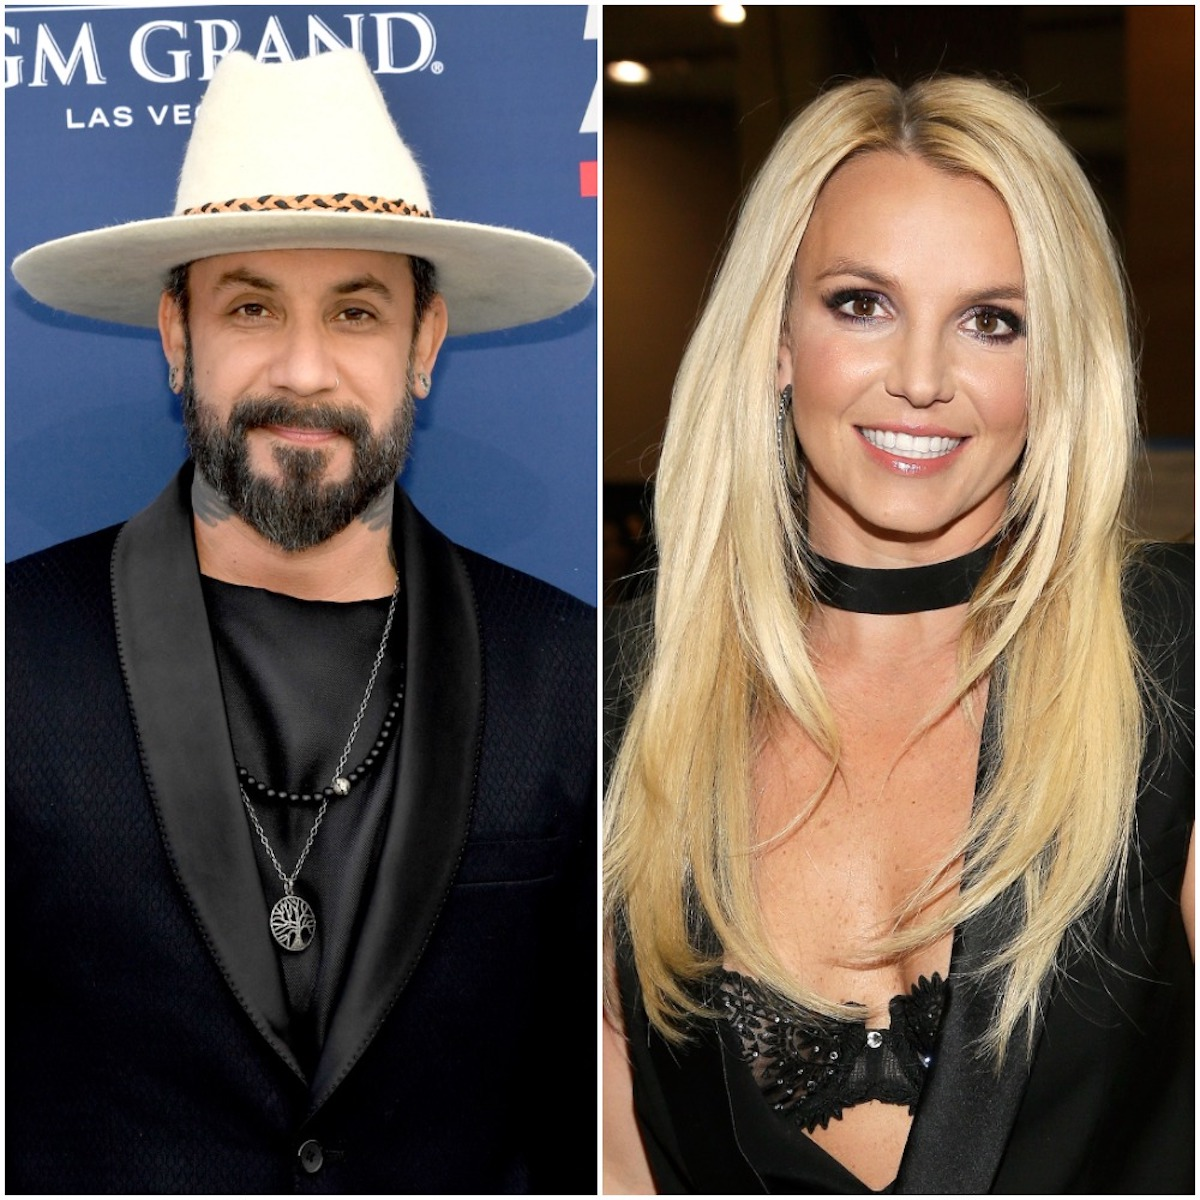 AJ McLean poses for cameras at the 2019 Academy of Country Music Awards; Britney Spears smiles at the 2013 iHeart Radio Music Festival